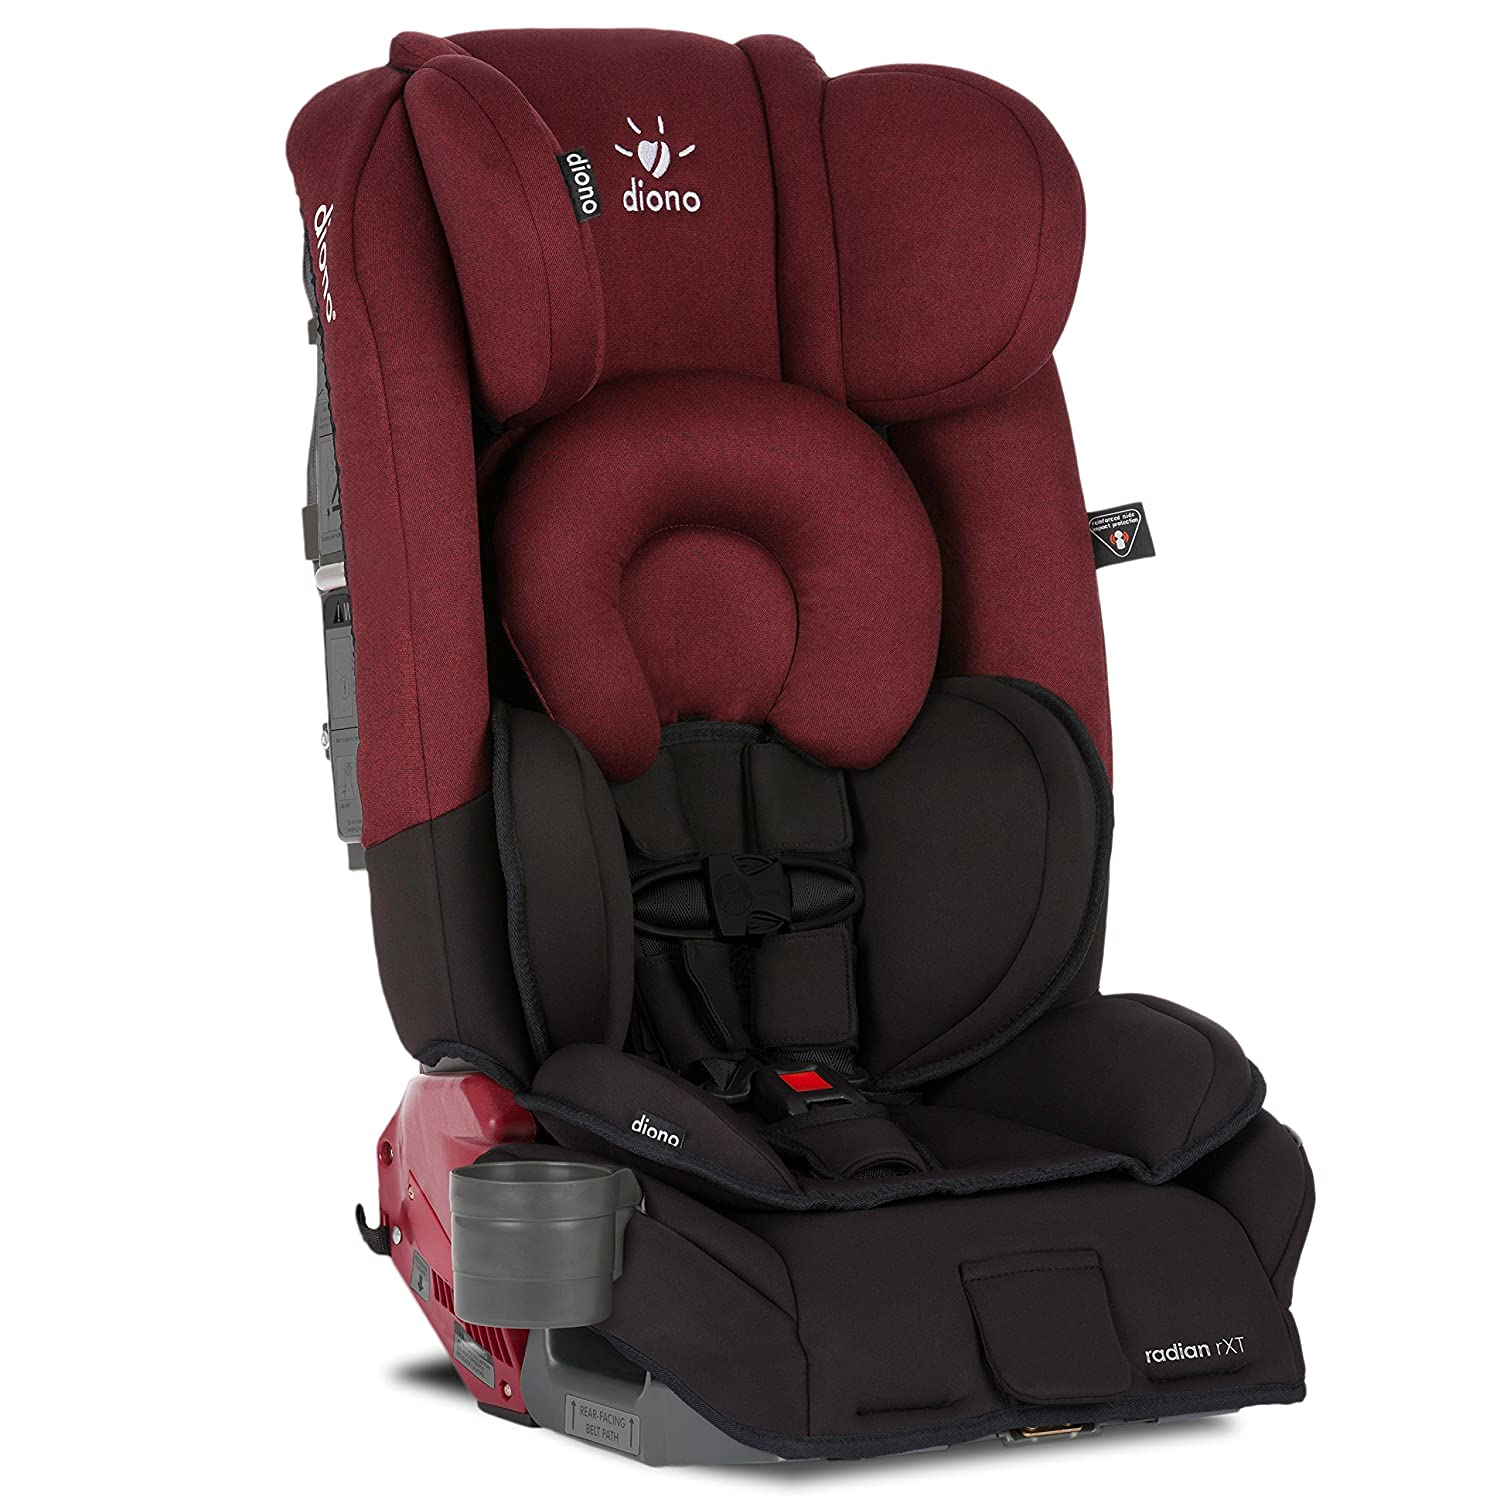 Finding The Best Travel Car Seat: 5 Reviews And Ultimate Guide 2